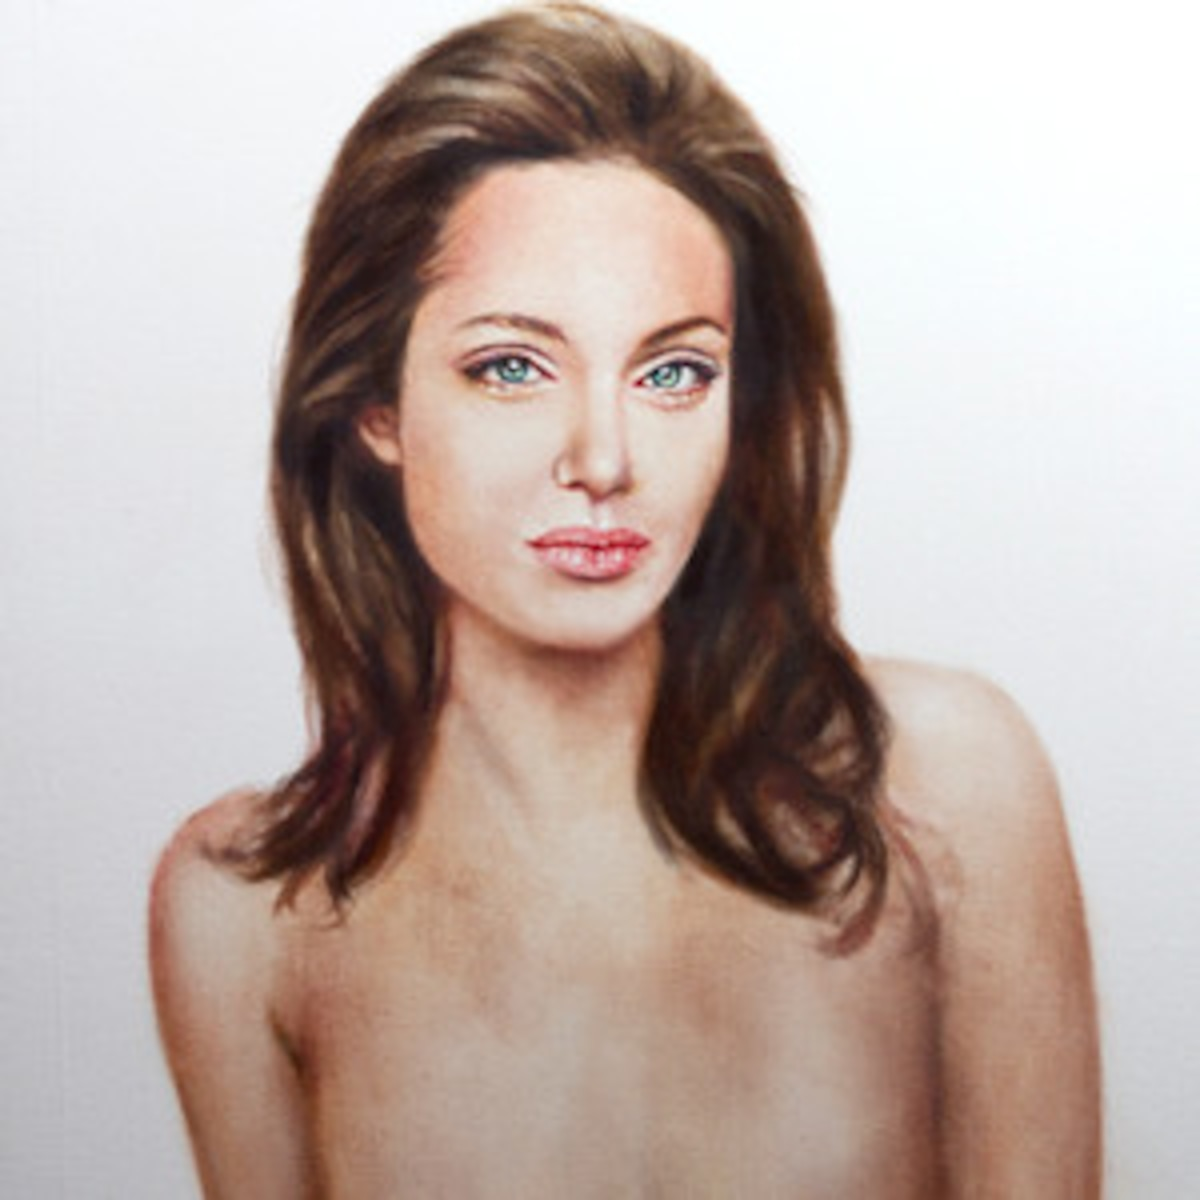 Angelina Jolie Topless Pics angelina's post-mastectomy topless portrait up for auction